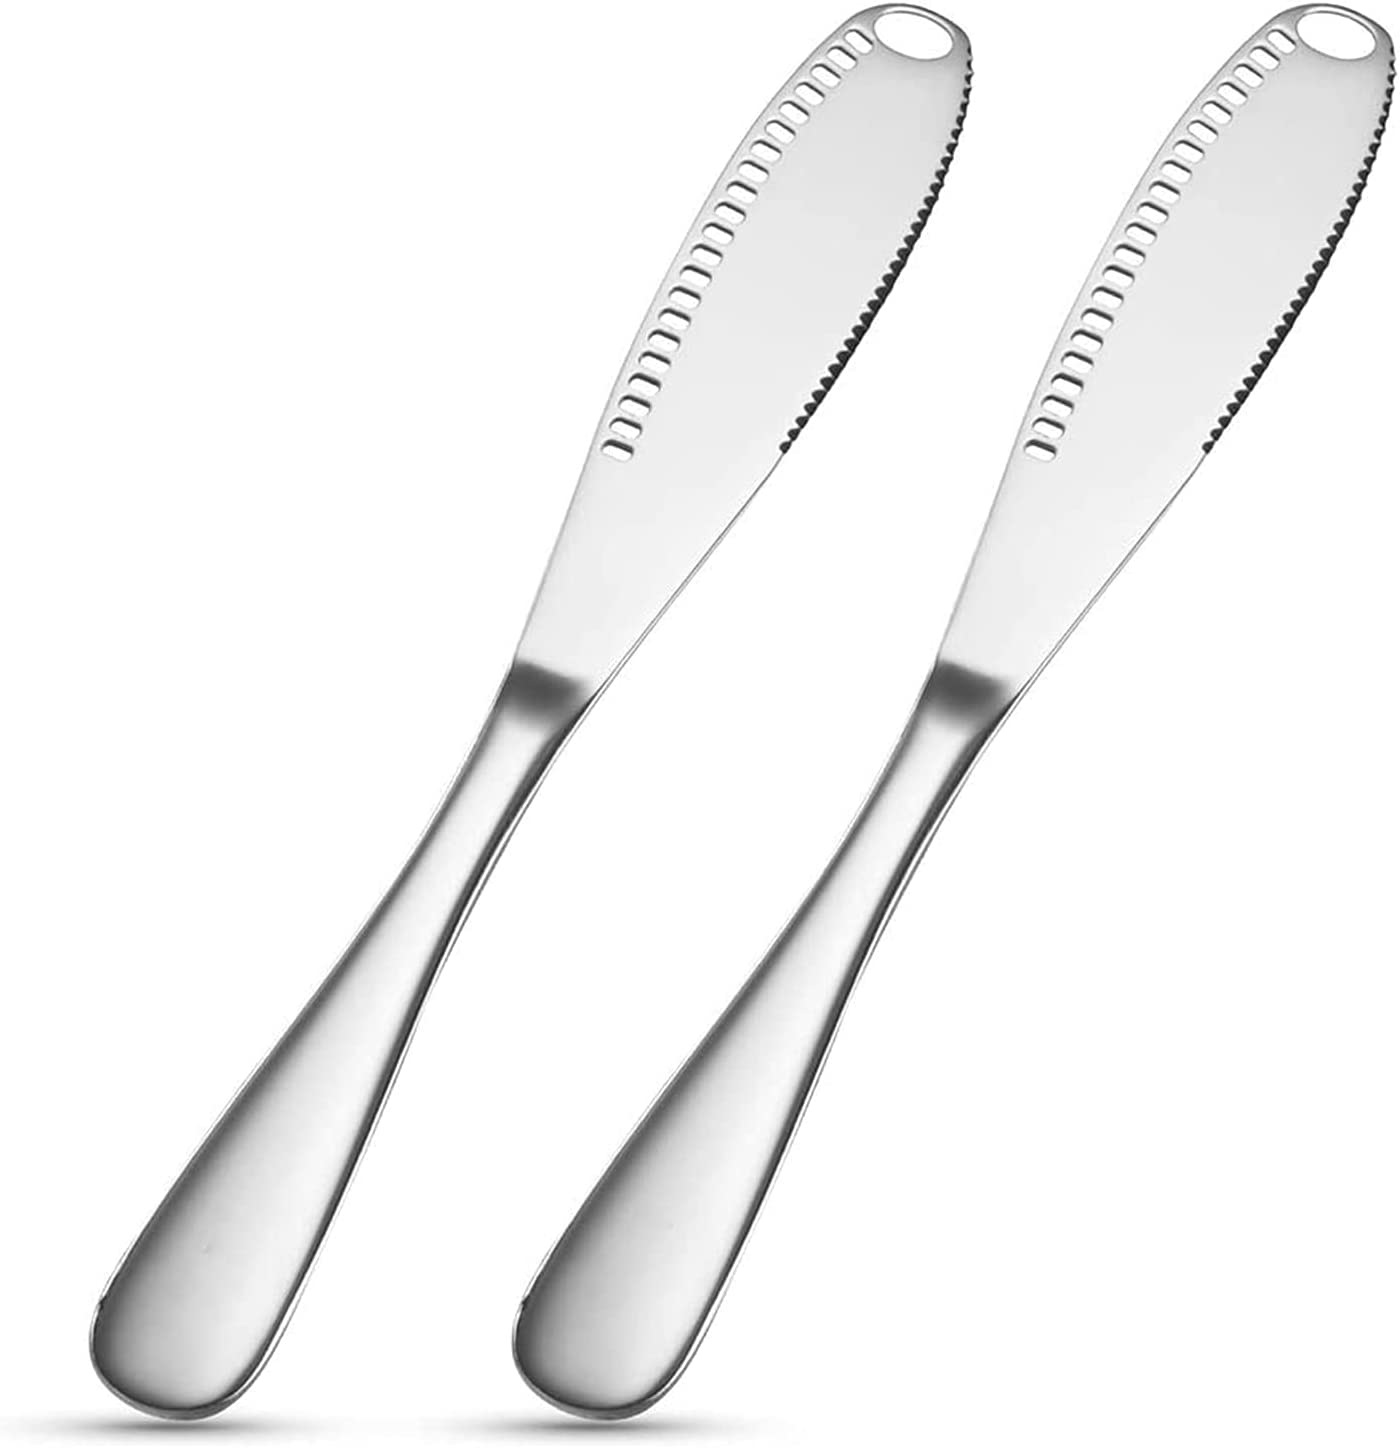 2 PCS Max 43% OFF depot Butter Spreader Knife Multifunctional C for Silver -